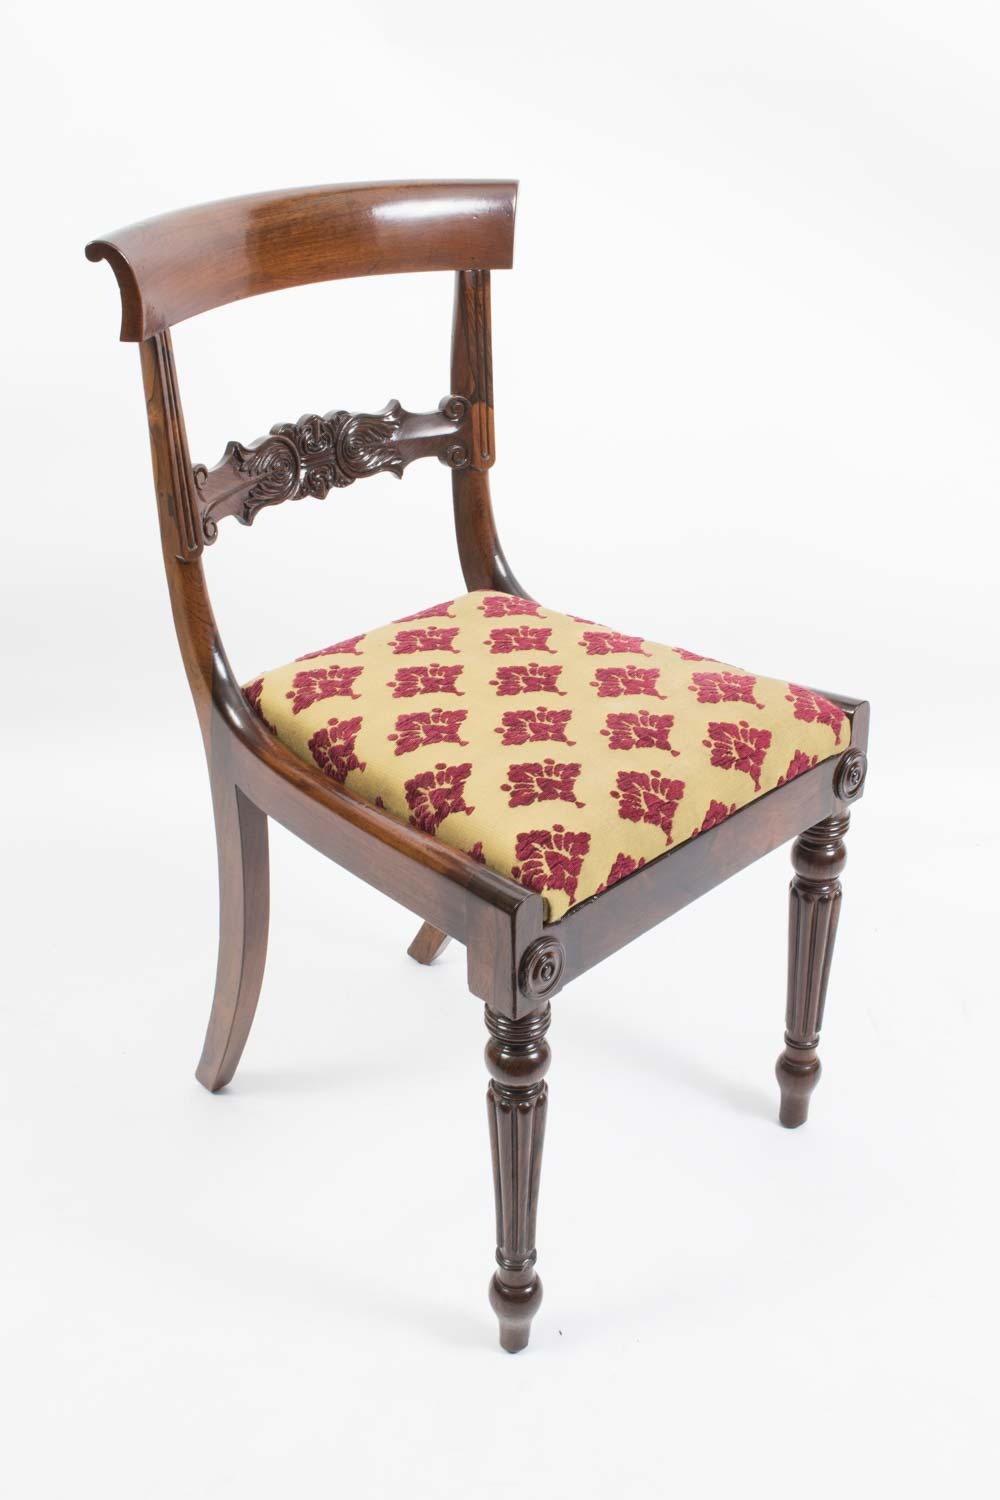 Regent Antiques Dining tables and chairs Dining chairs  : 06383 Antique Set 6 William IV Rosewood Dining Chairs c1835 19 from regentantiques.com size 1000 x 1500 jpeg 94kB